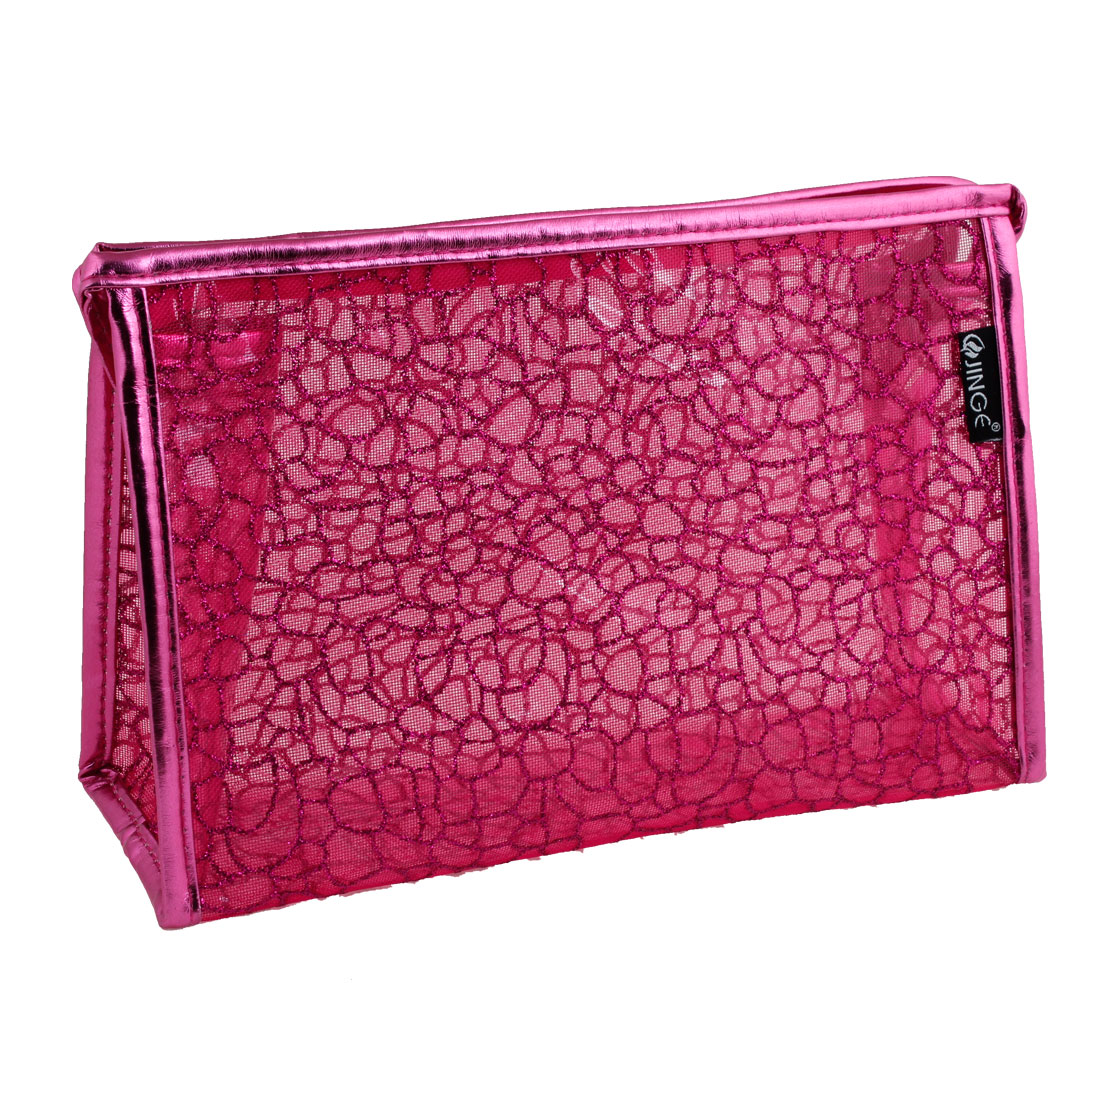 PVC Shiny Stone Block Printed Water Resistant Cosmetics Makeup Bag Pouch Fuchsia